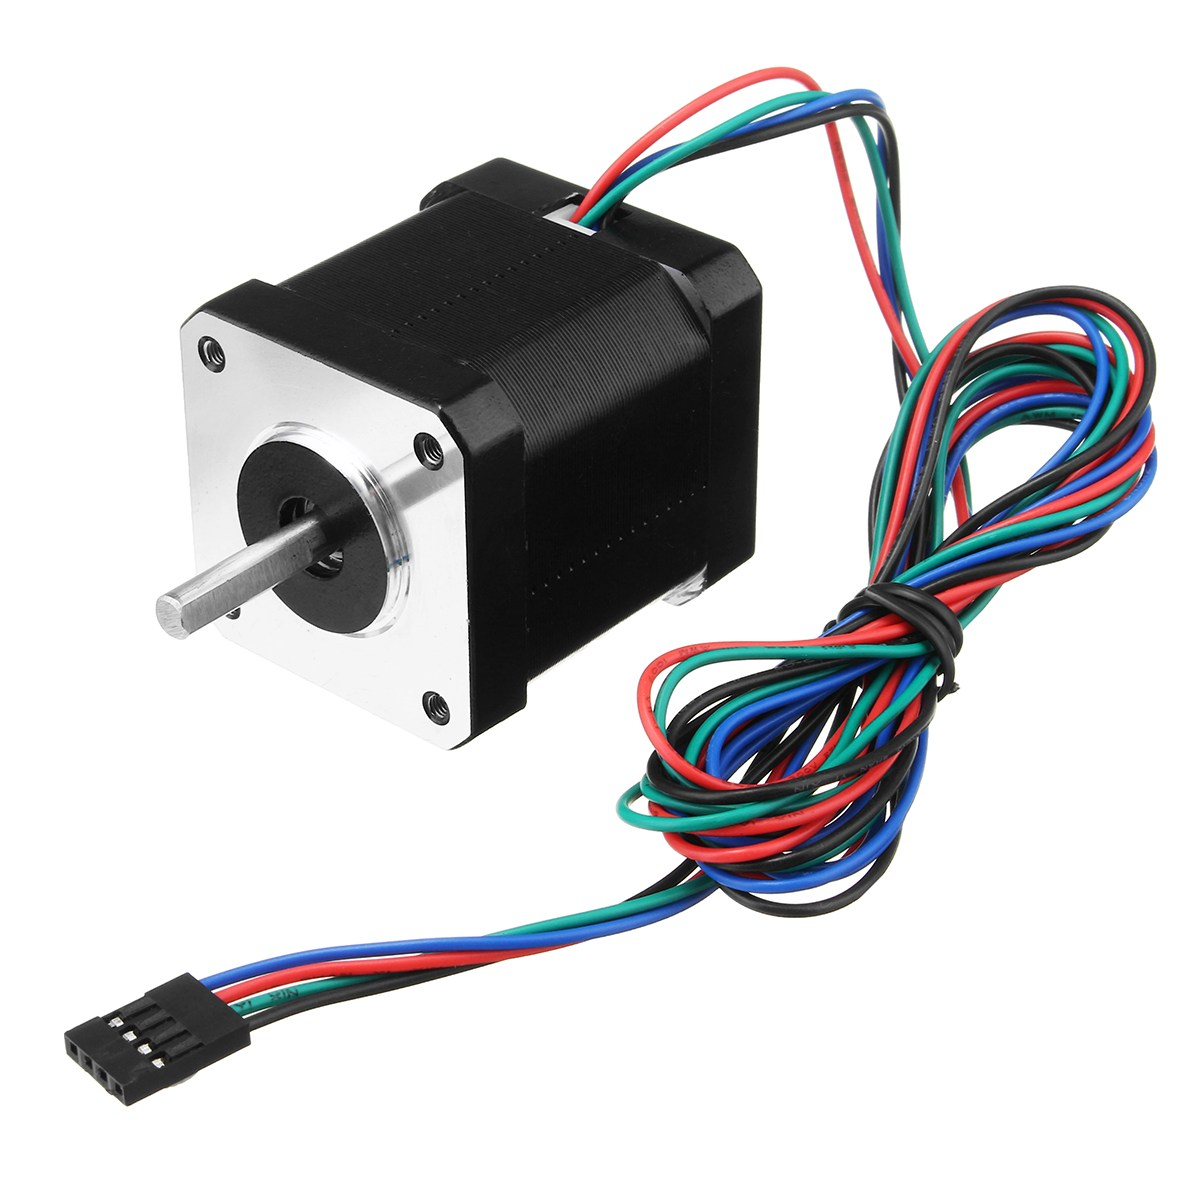 1 pcs Brand New High Quality DC Motor Mechanical End Stop Endstop Limit Switch With Cable Stepper Motor for 3D Printer new opto optical endstop end stop switch cnc optical endstop using tcst2103 photo interrupter